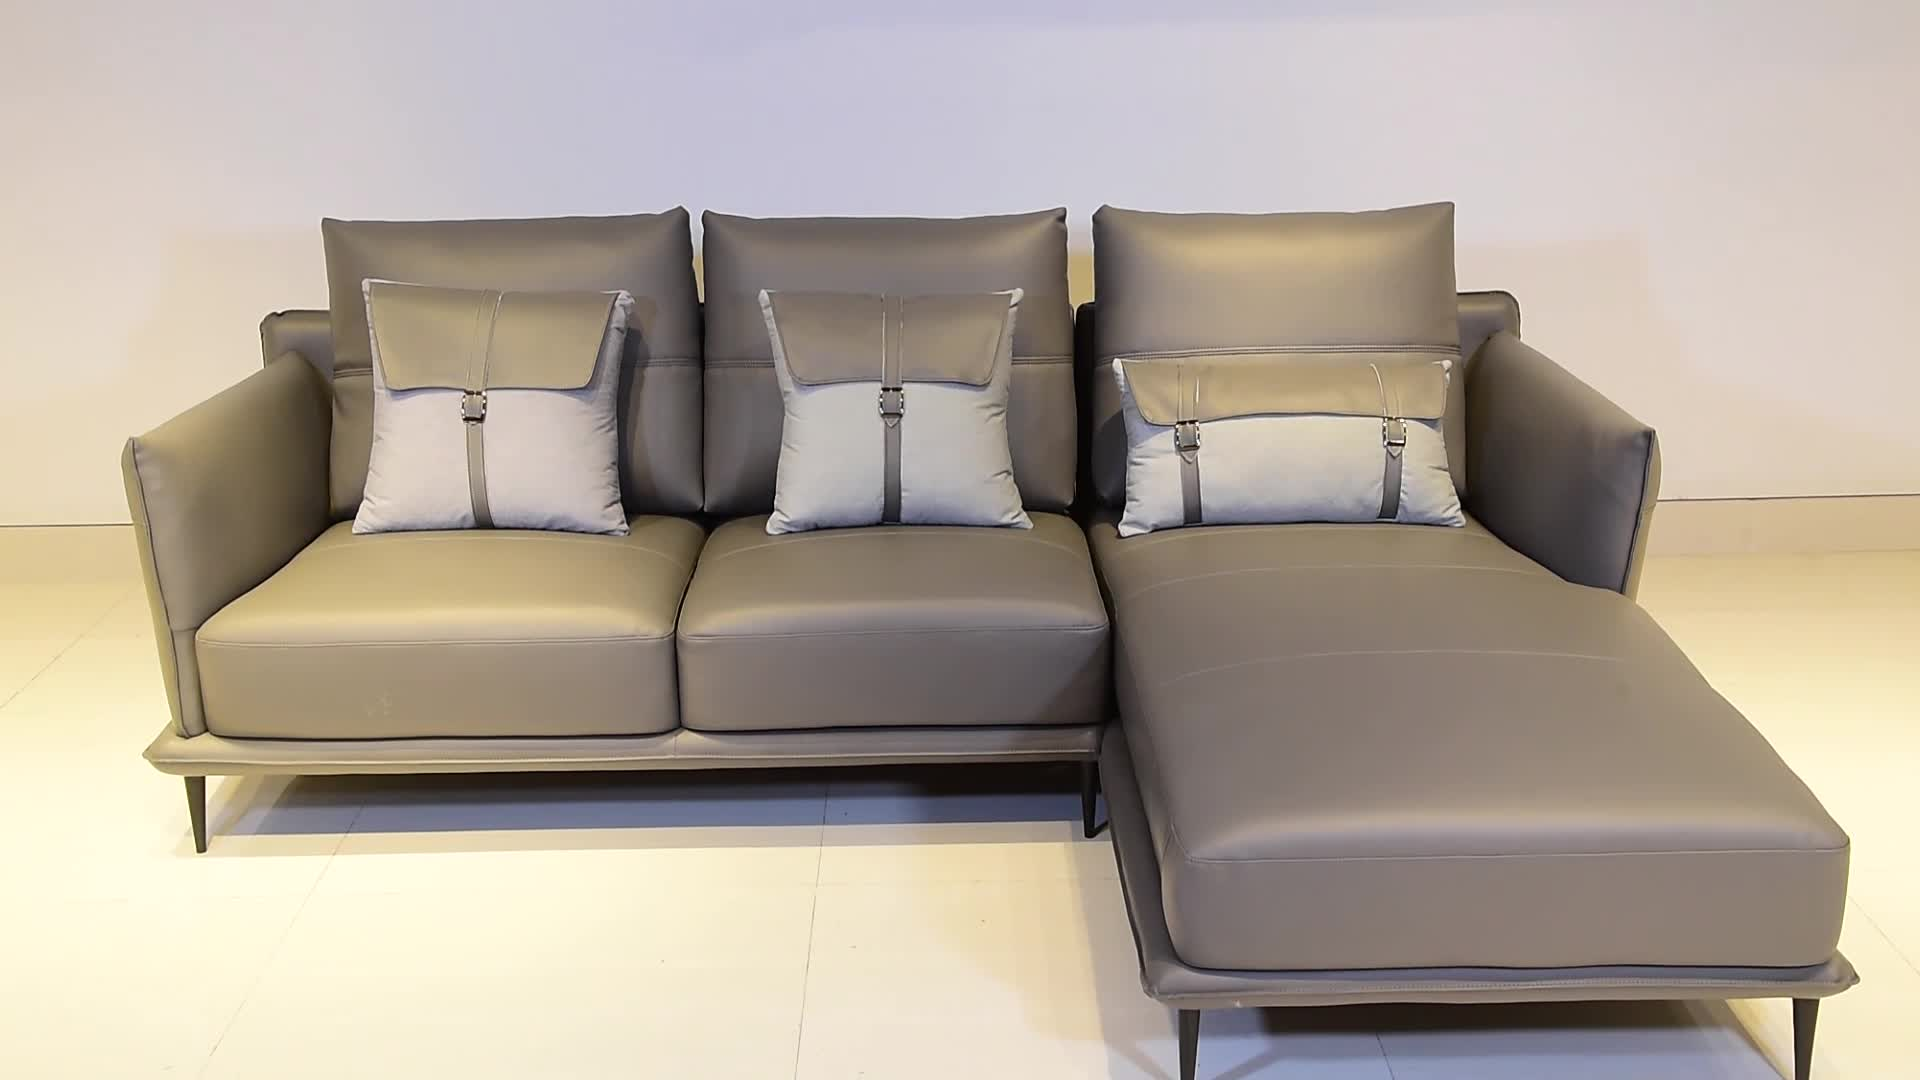 Luxury Home couch living room sofa, couch living room modern sofa, leather couch living room sofa